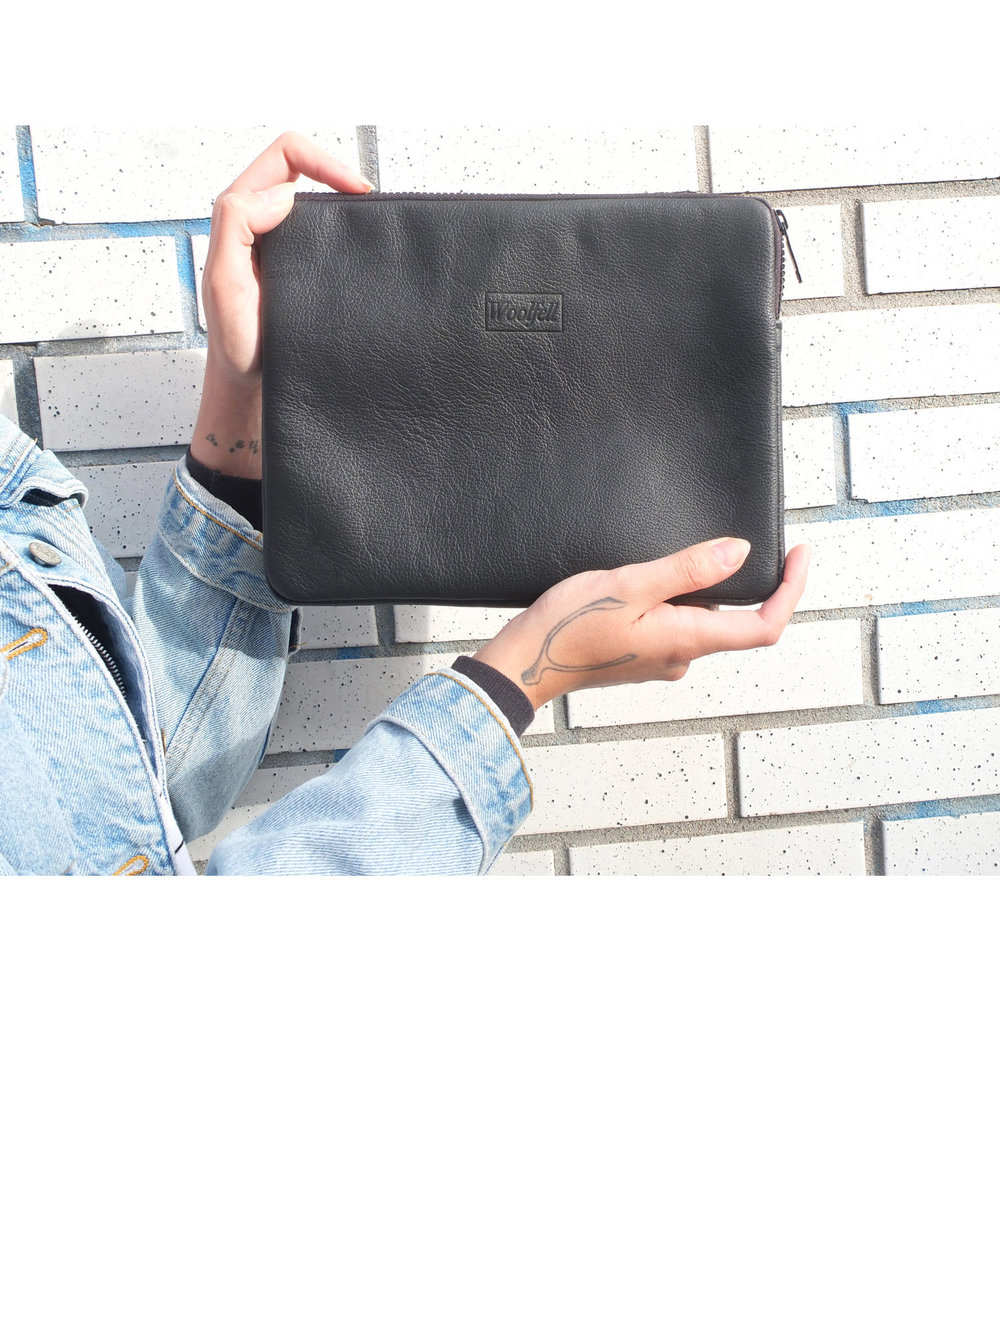 Leather laptop case - more sizes available90.00$ - 120.00$